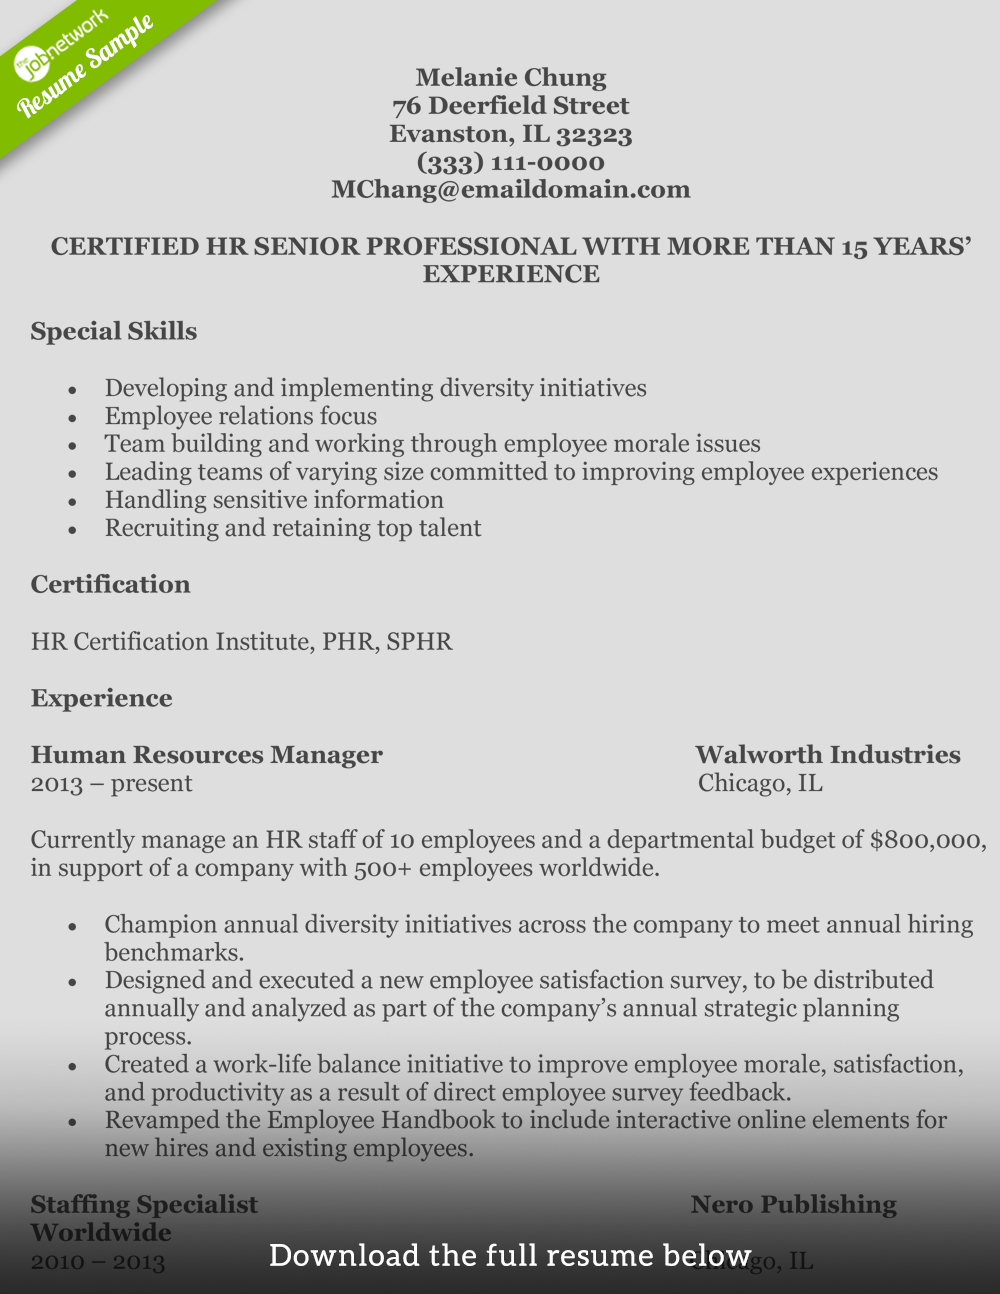 How To Write A Perfect Human Resources Resume - Human-resource-manager-resume-sample